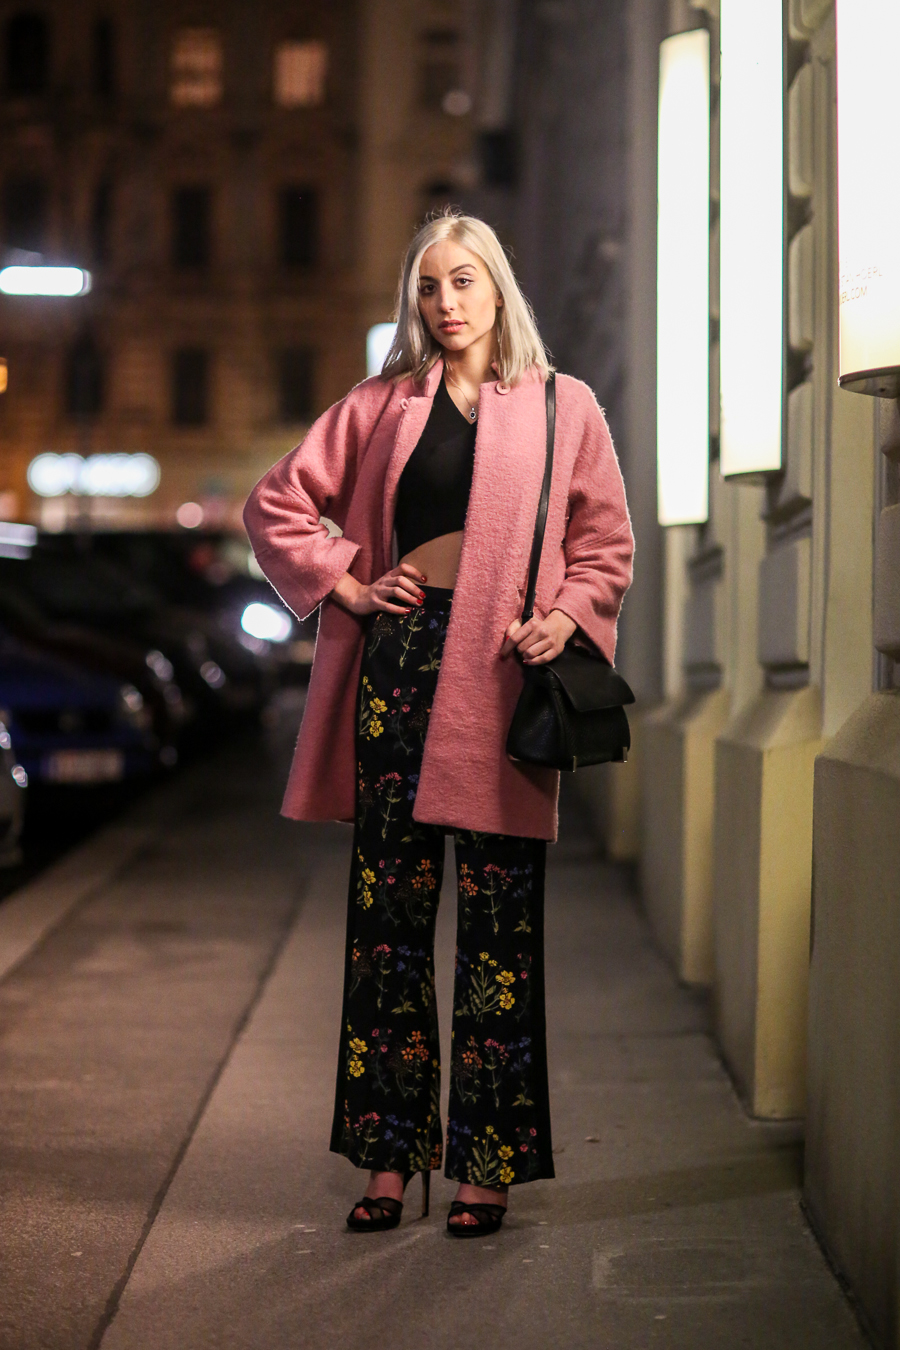 street-style-fashion-blog-vienna-selina